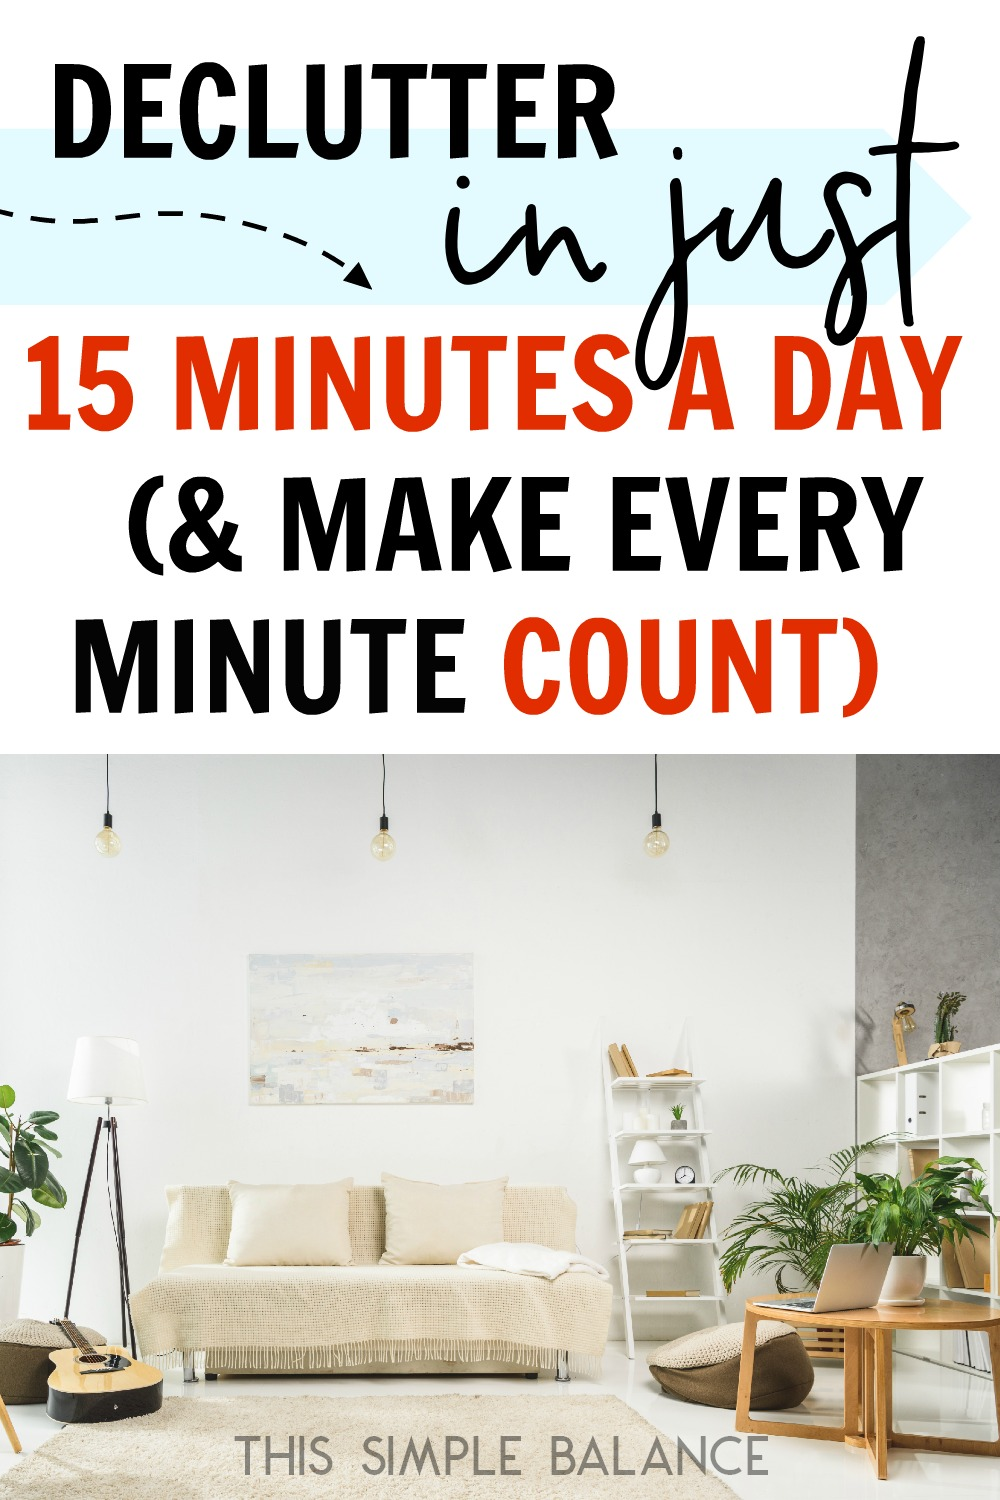 Decluttering Tips for People who have no time: if you only have 15 minutes a day - or less - to declutter, use those minutes wisely with this decluttering guide.